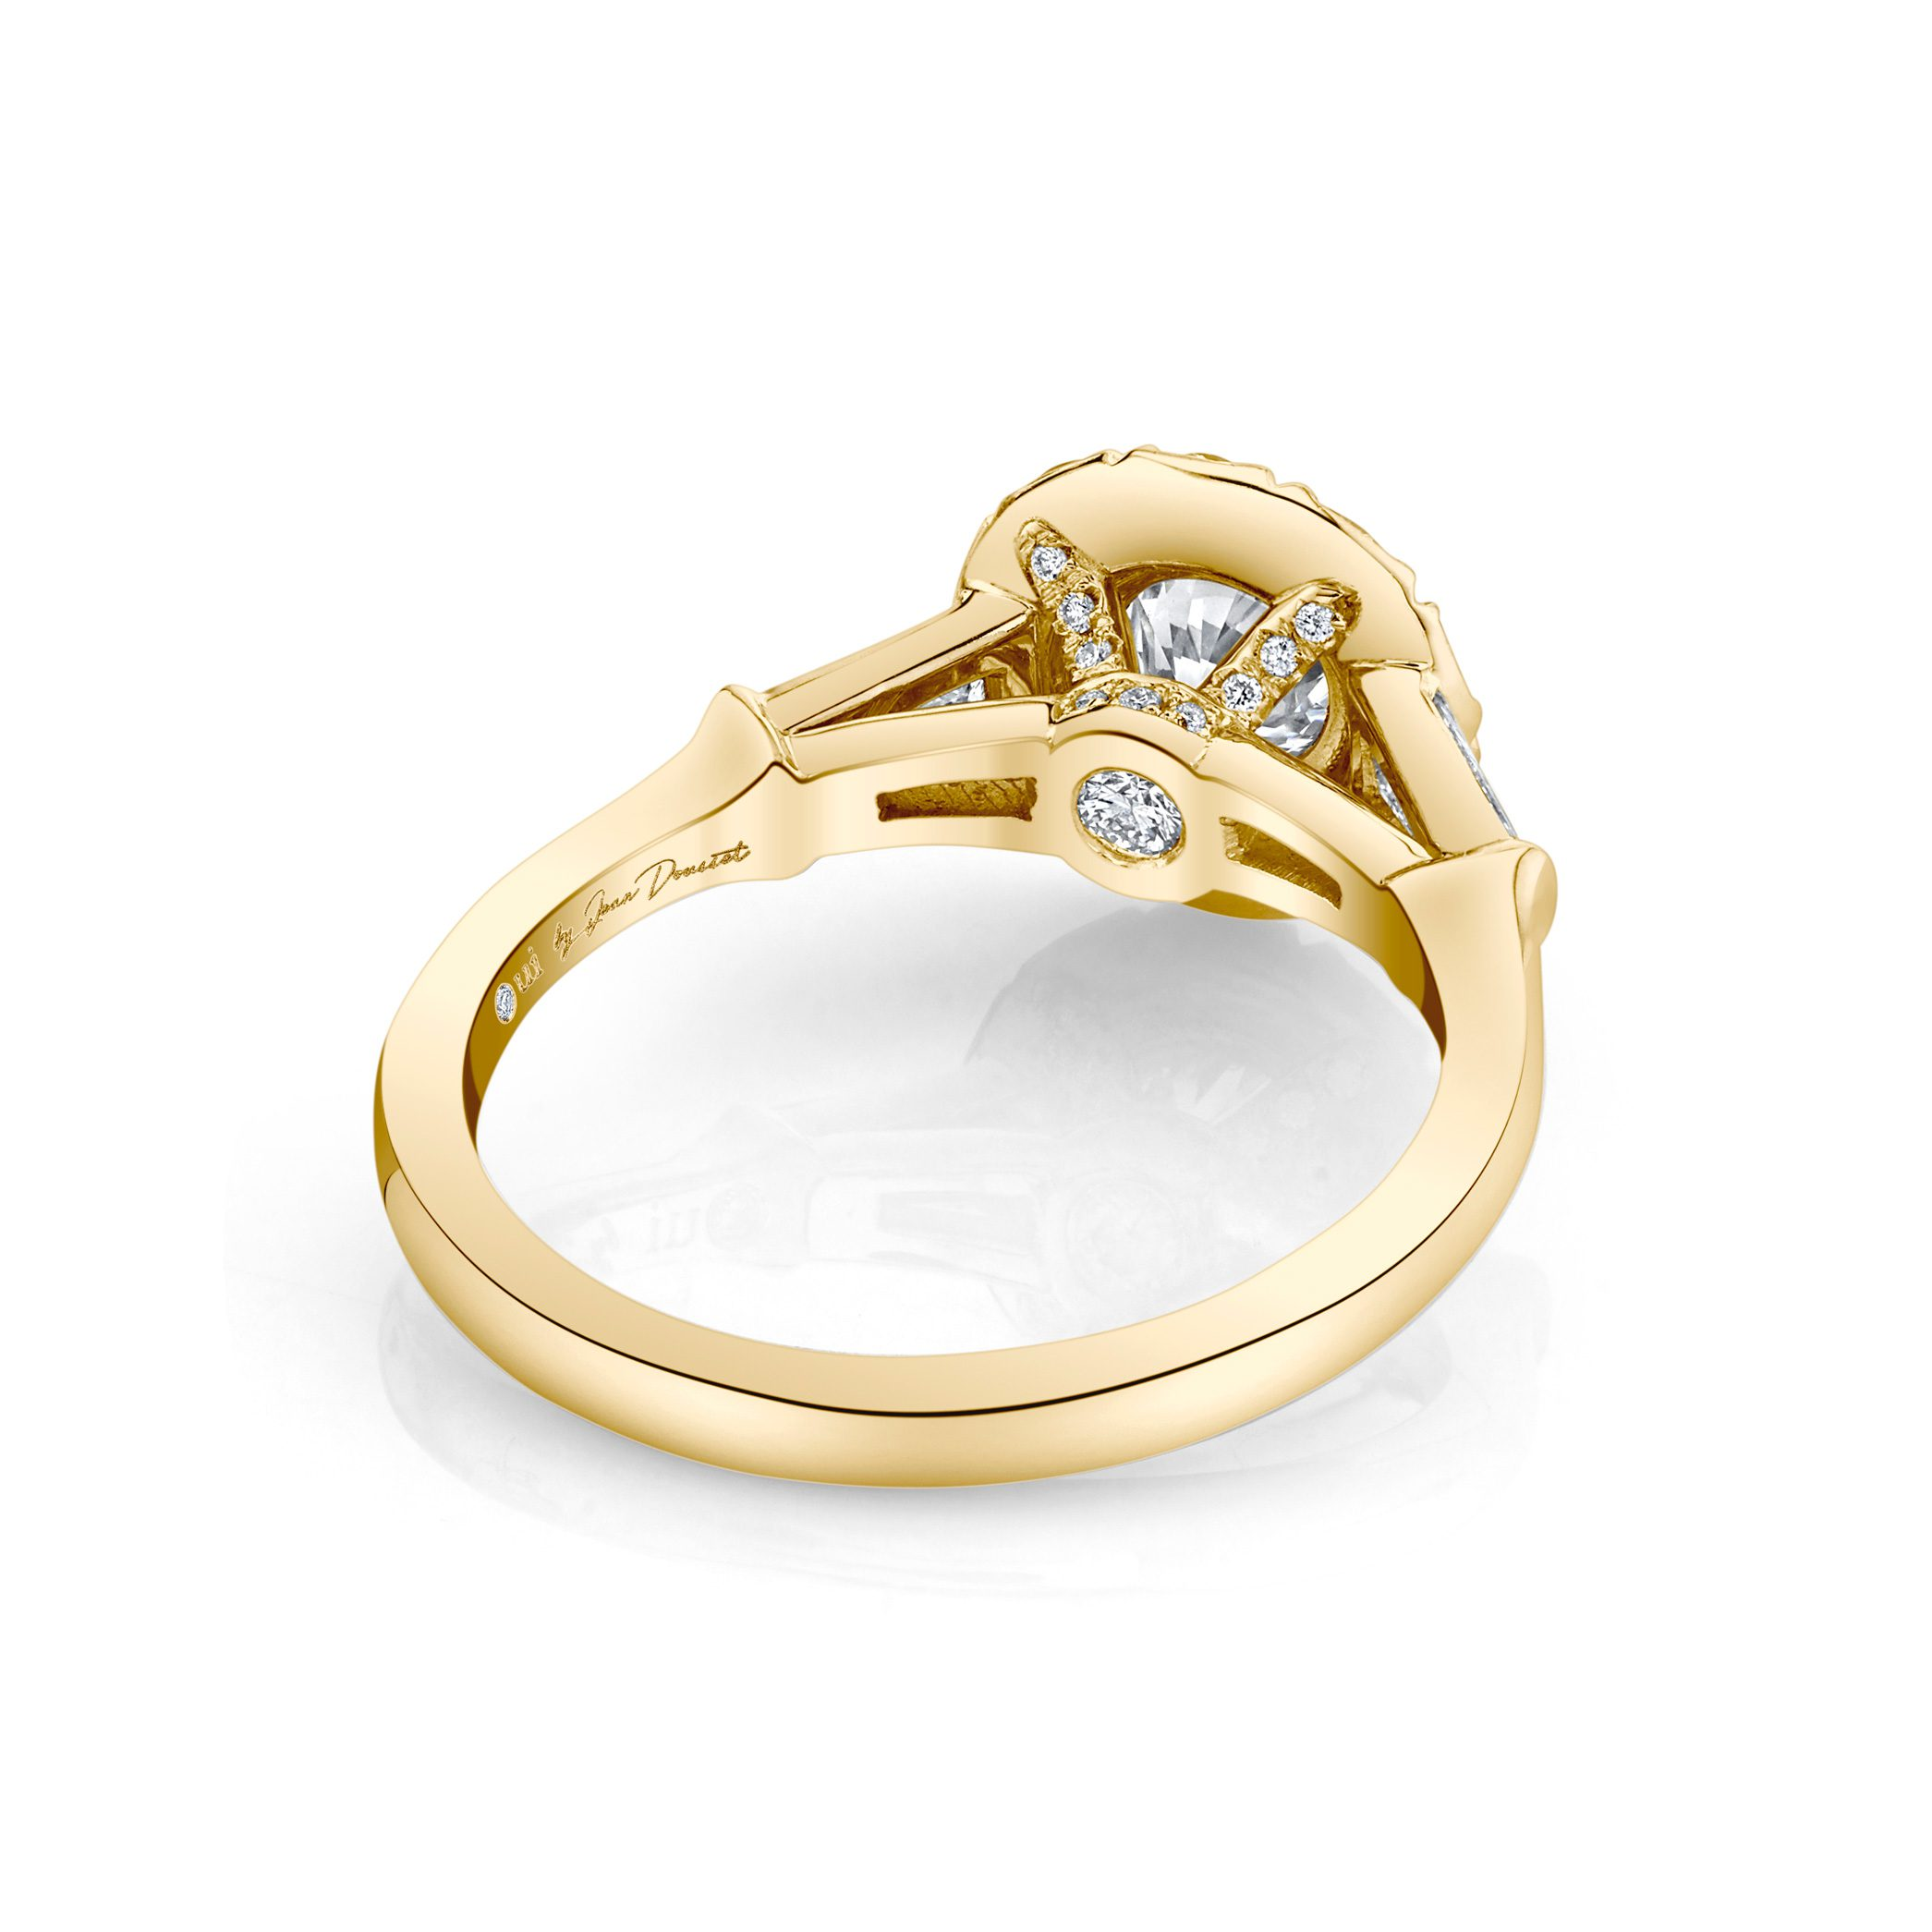 Madeline Round Brilliant Seamless Solitaire® Three Stone Engagement Ring 18k Yellow Gold Back View by Oui by Jean Dousset